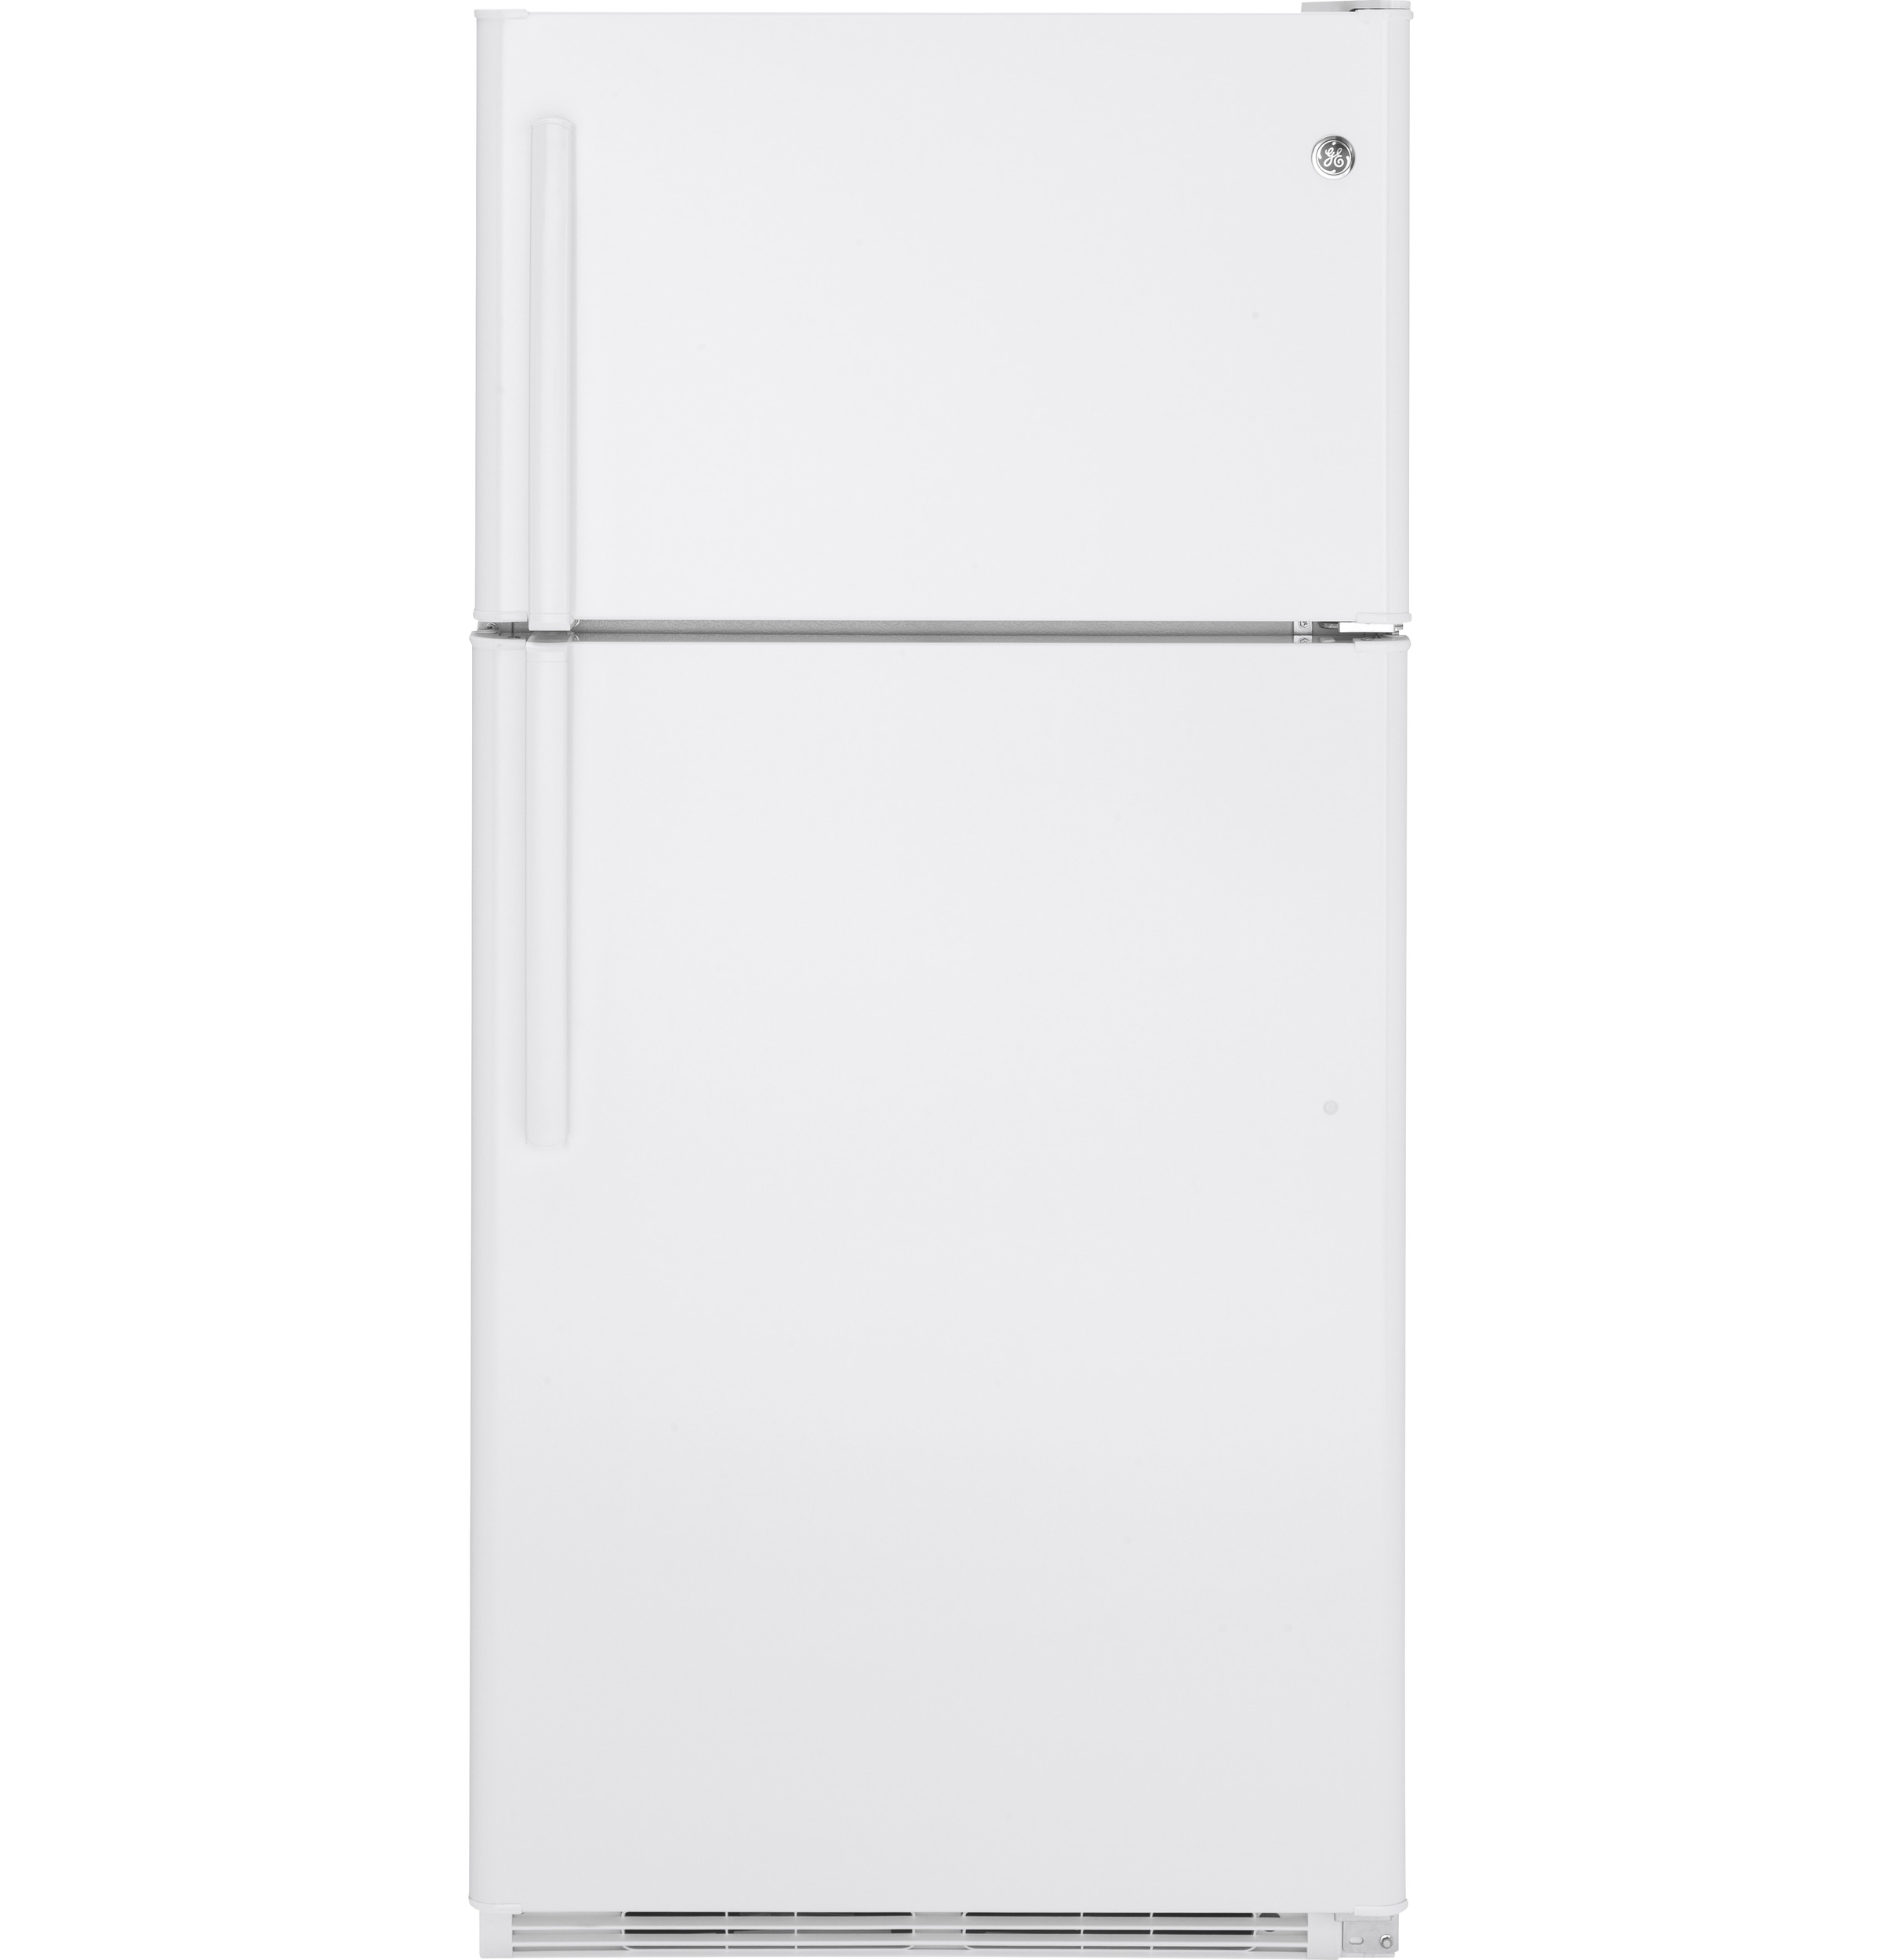 GE GE® 20.8 Cu. Ft. Top-Freezer Refrigerator